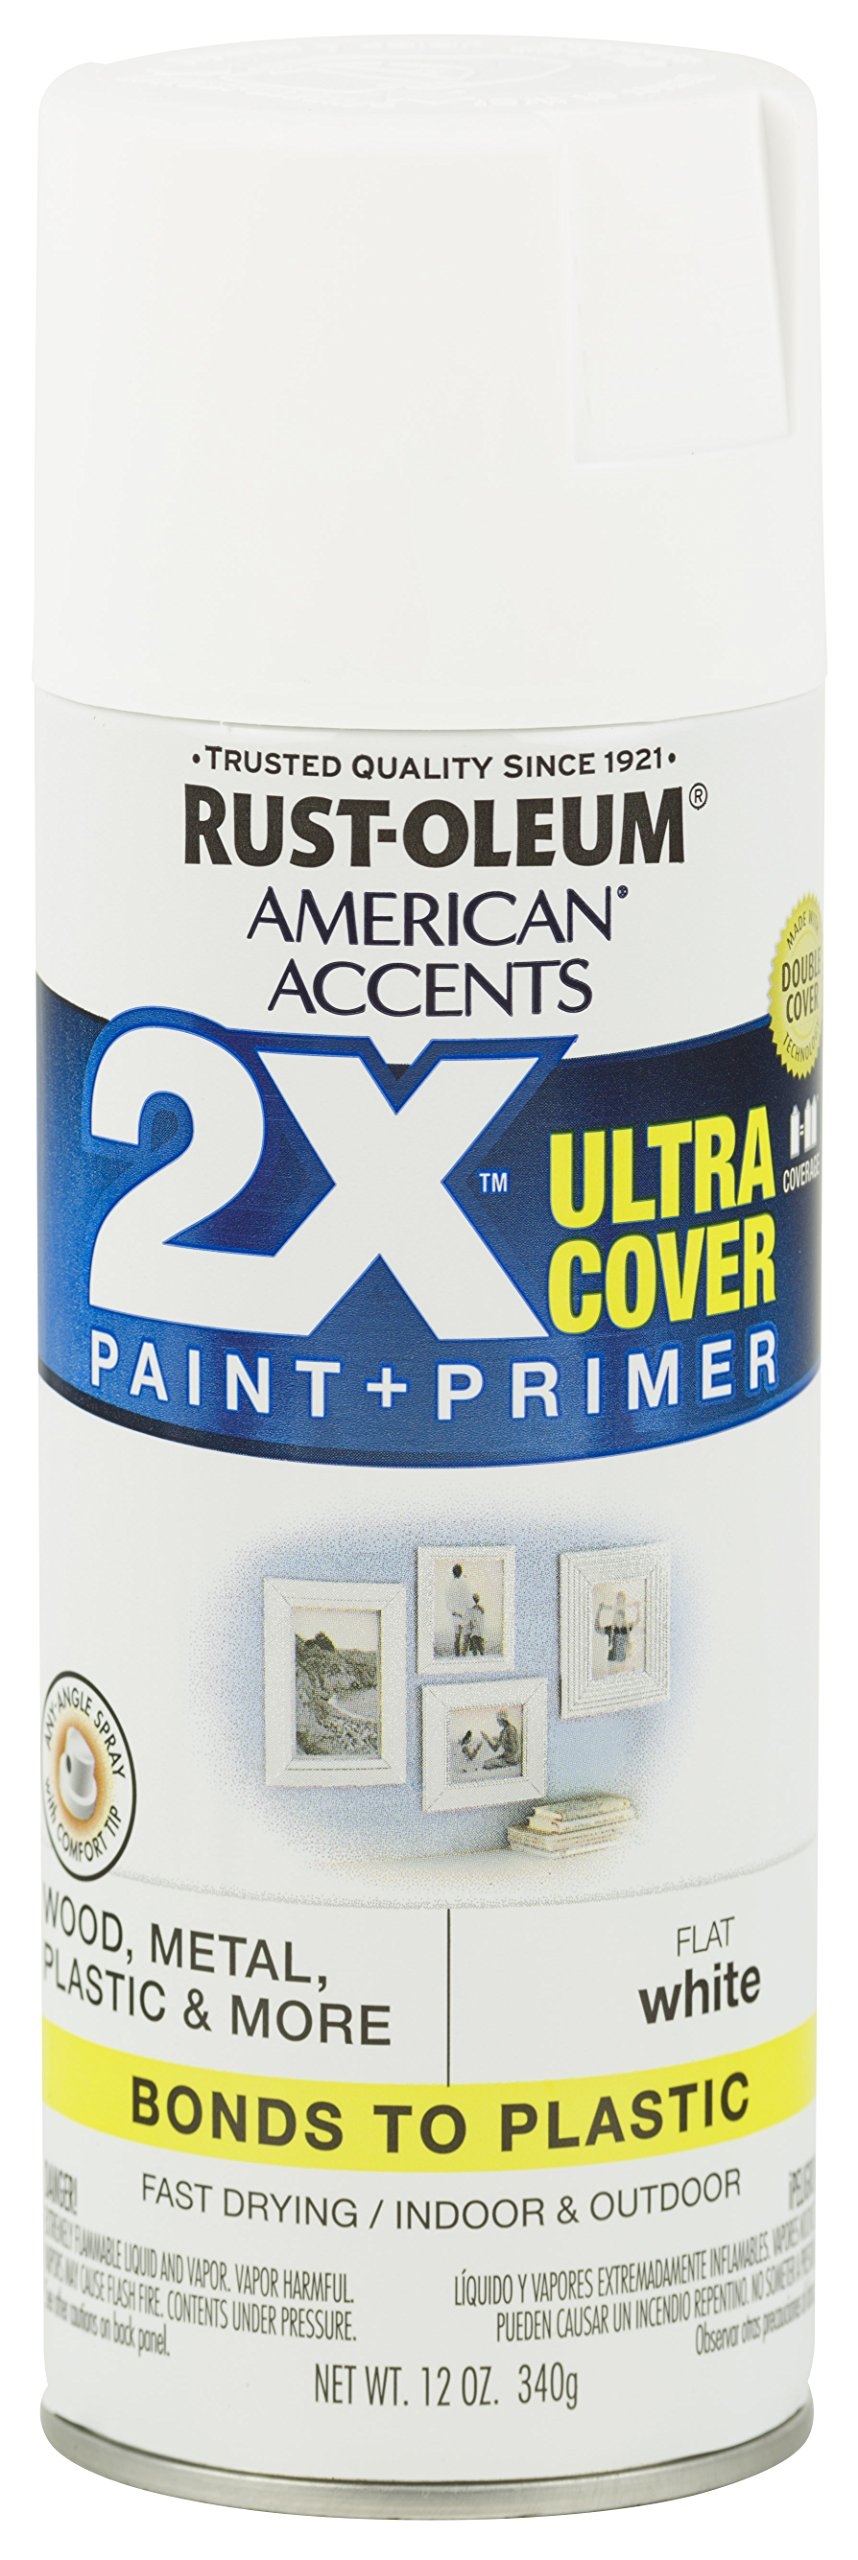 Rust-Oleum 327868 American Accents Spray Paint, 12 oz, Flat White